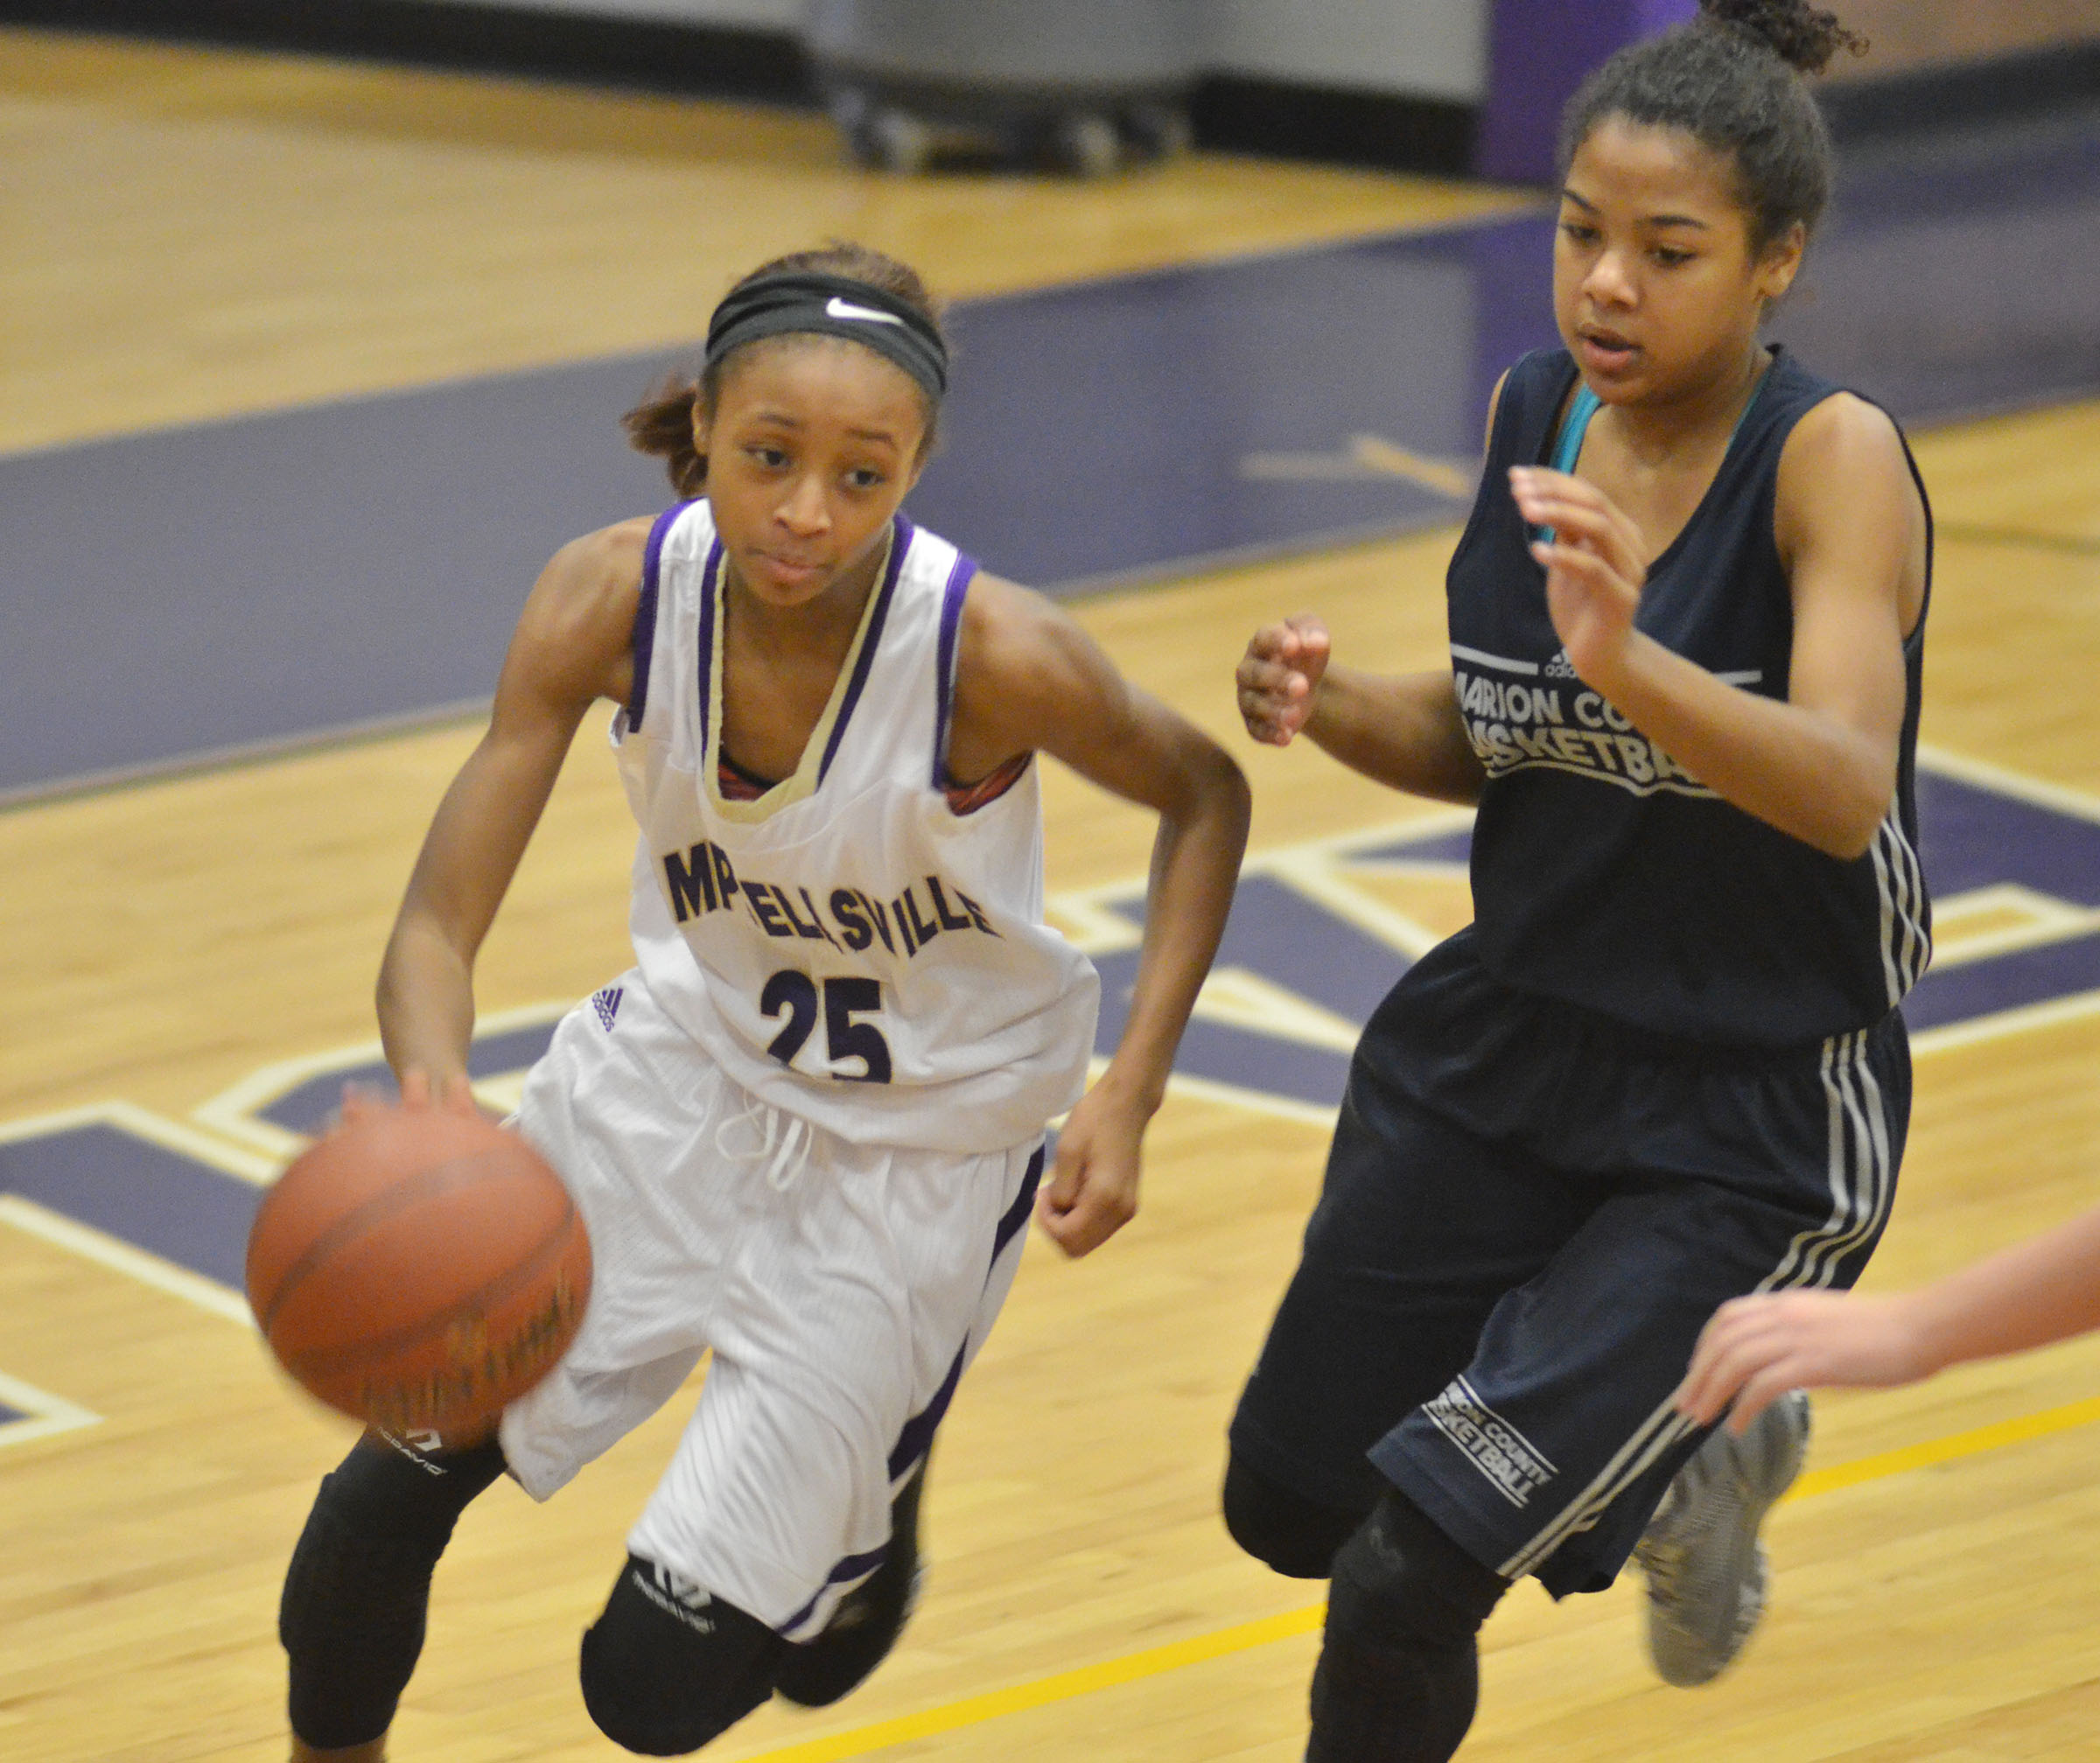 Campbellsville Middle School seventh-grader Bri Gowdy drives the ball.